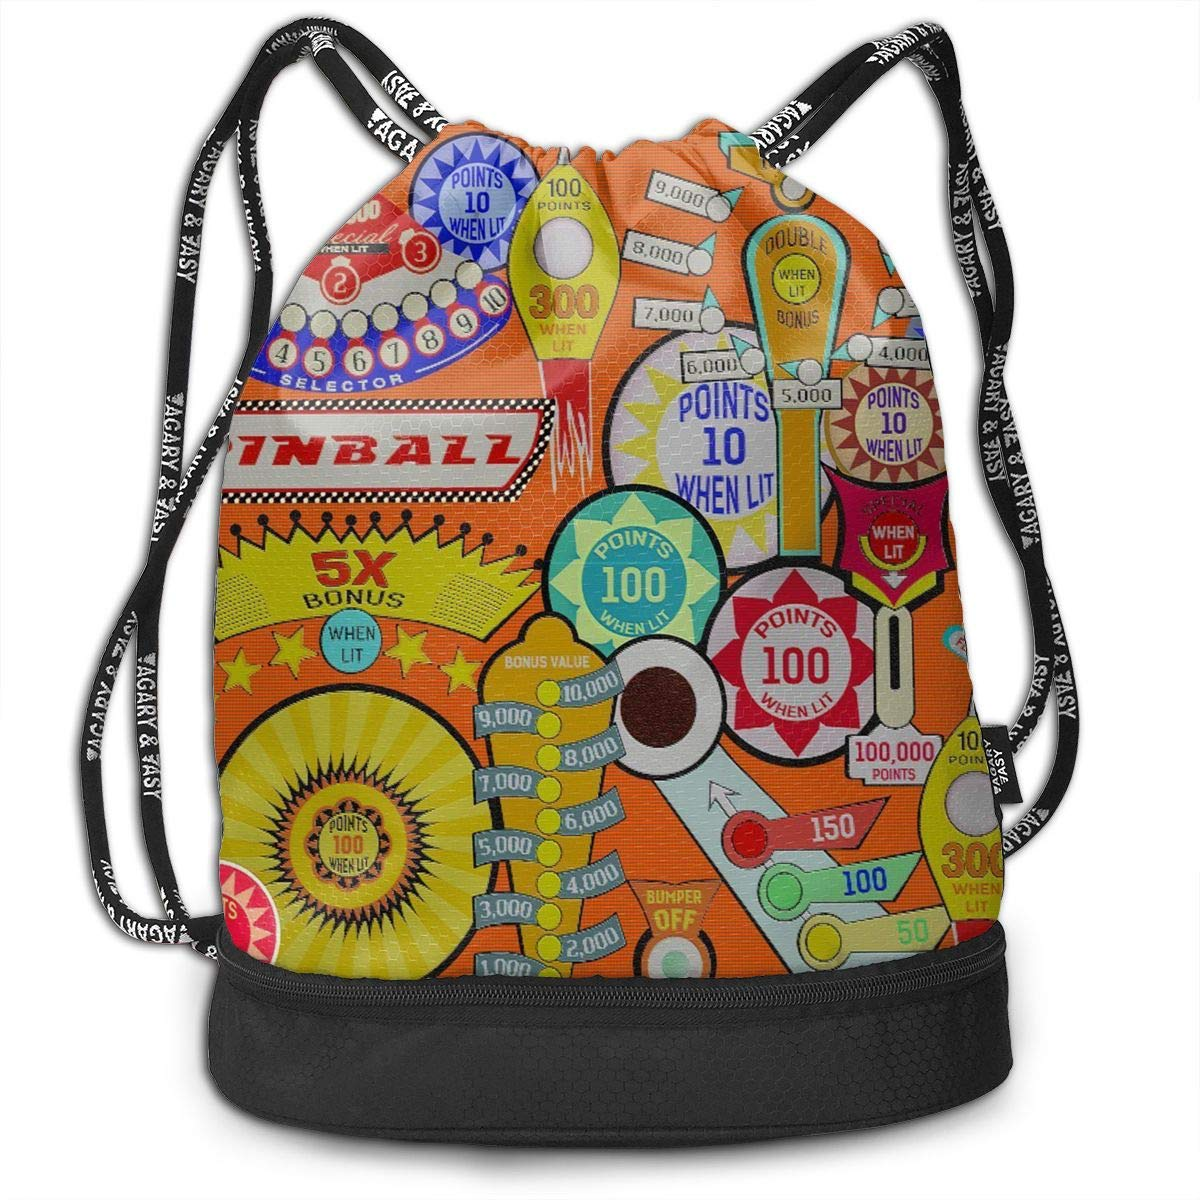 Cinch Backpack Sackpack Tote Sack with Wet /& Dry Compartments for Travel Hiking Gym Zol1Q Pinball Drawstring Bag for Men /& Women